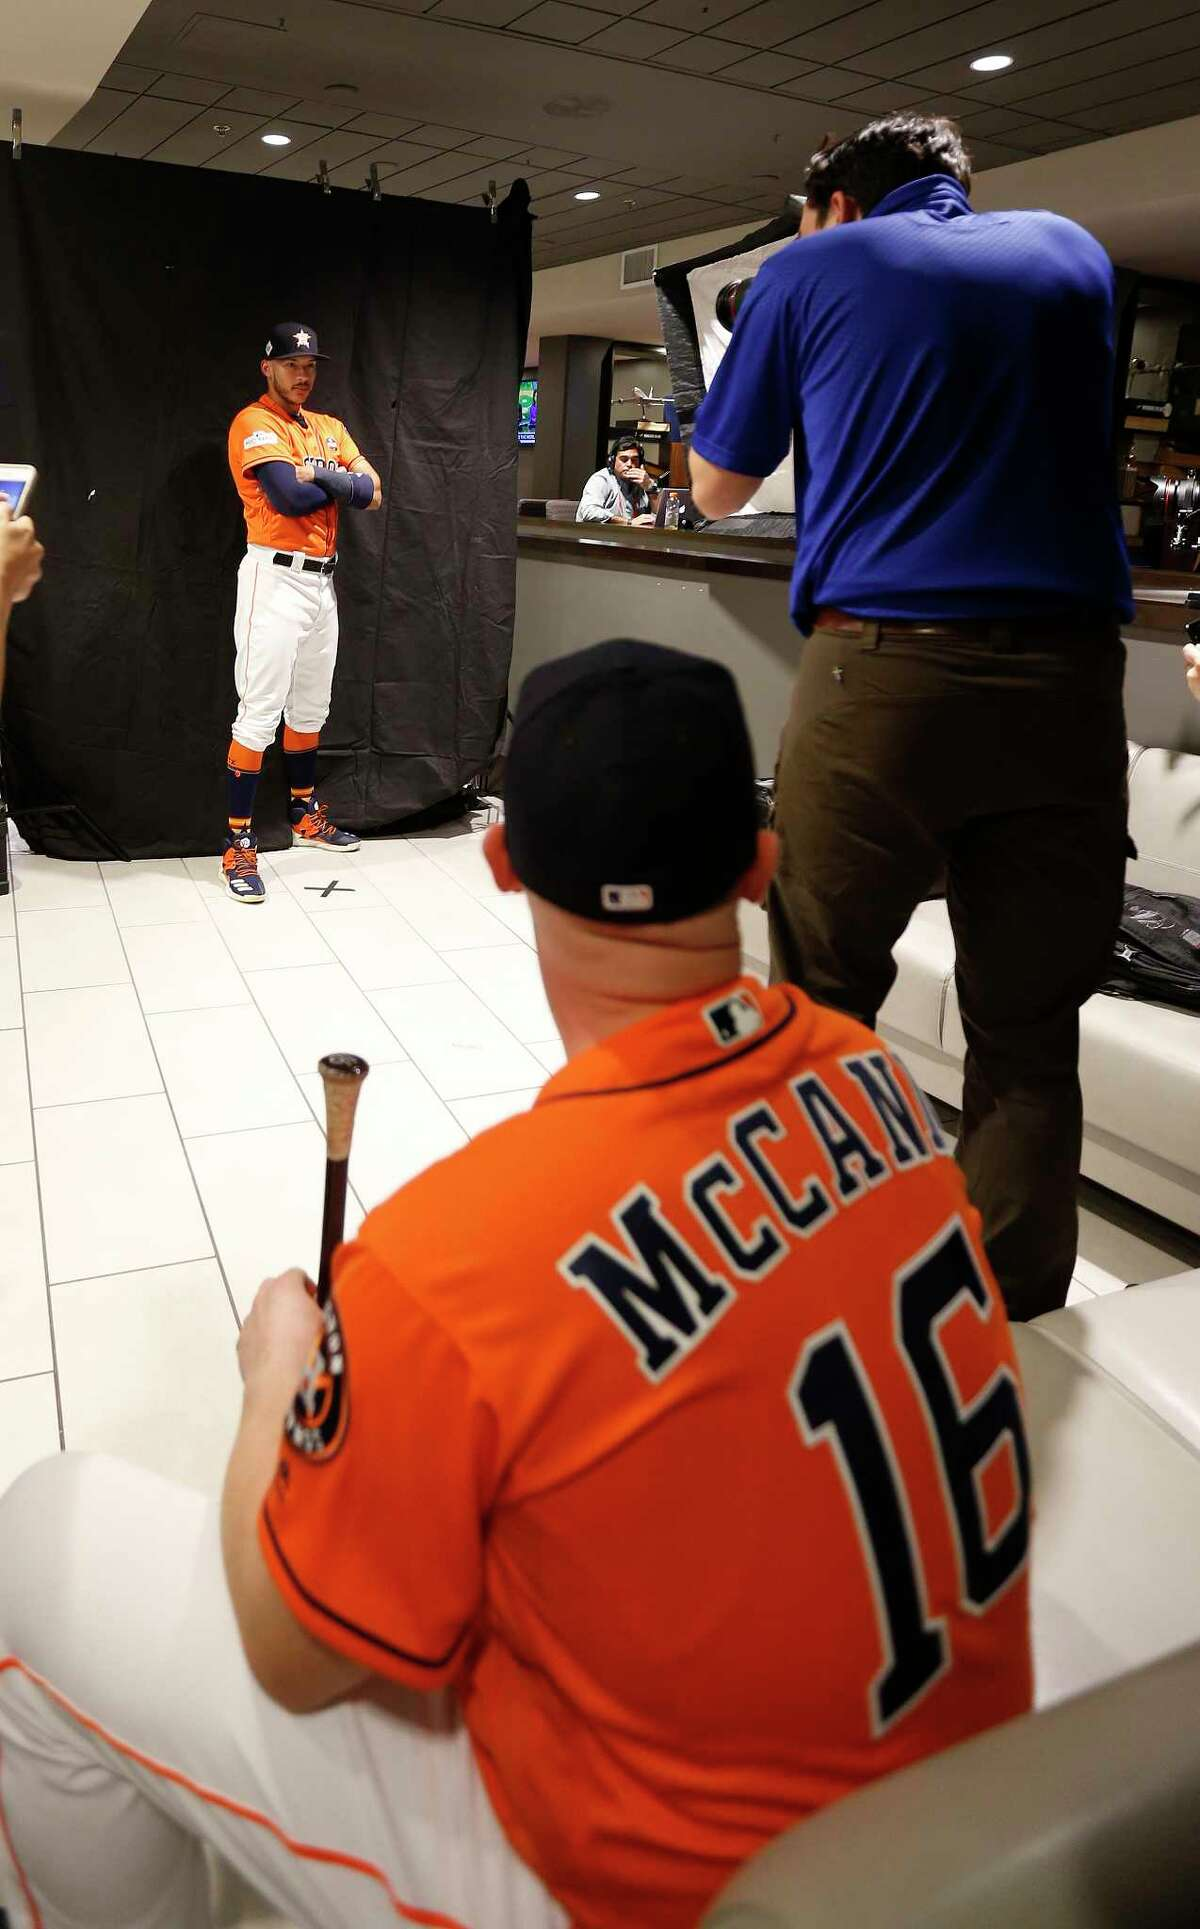 Houston Astros catcher Brian McCann waits for Carlos Correa to finsh getting his photo taken by MLB photographer Alex Trautwig during the World Series Media Day at Dodger Stadium, Monday, Oct. 23, 2017, in Los Angeles.